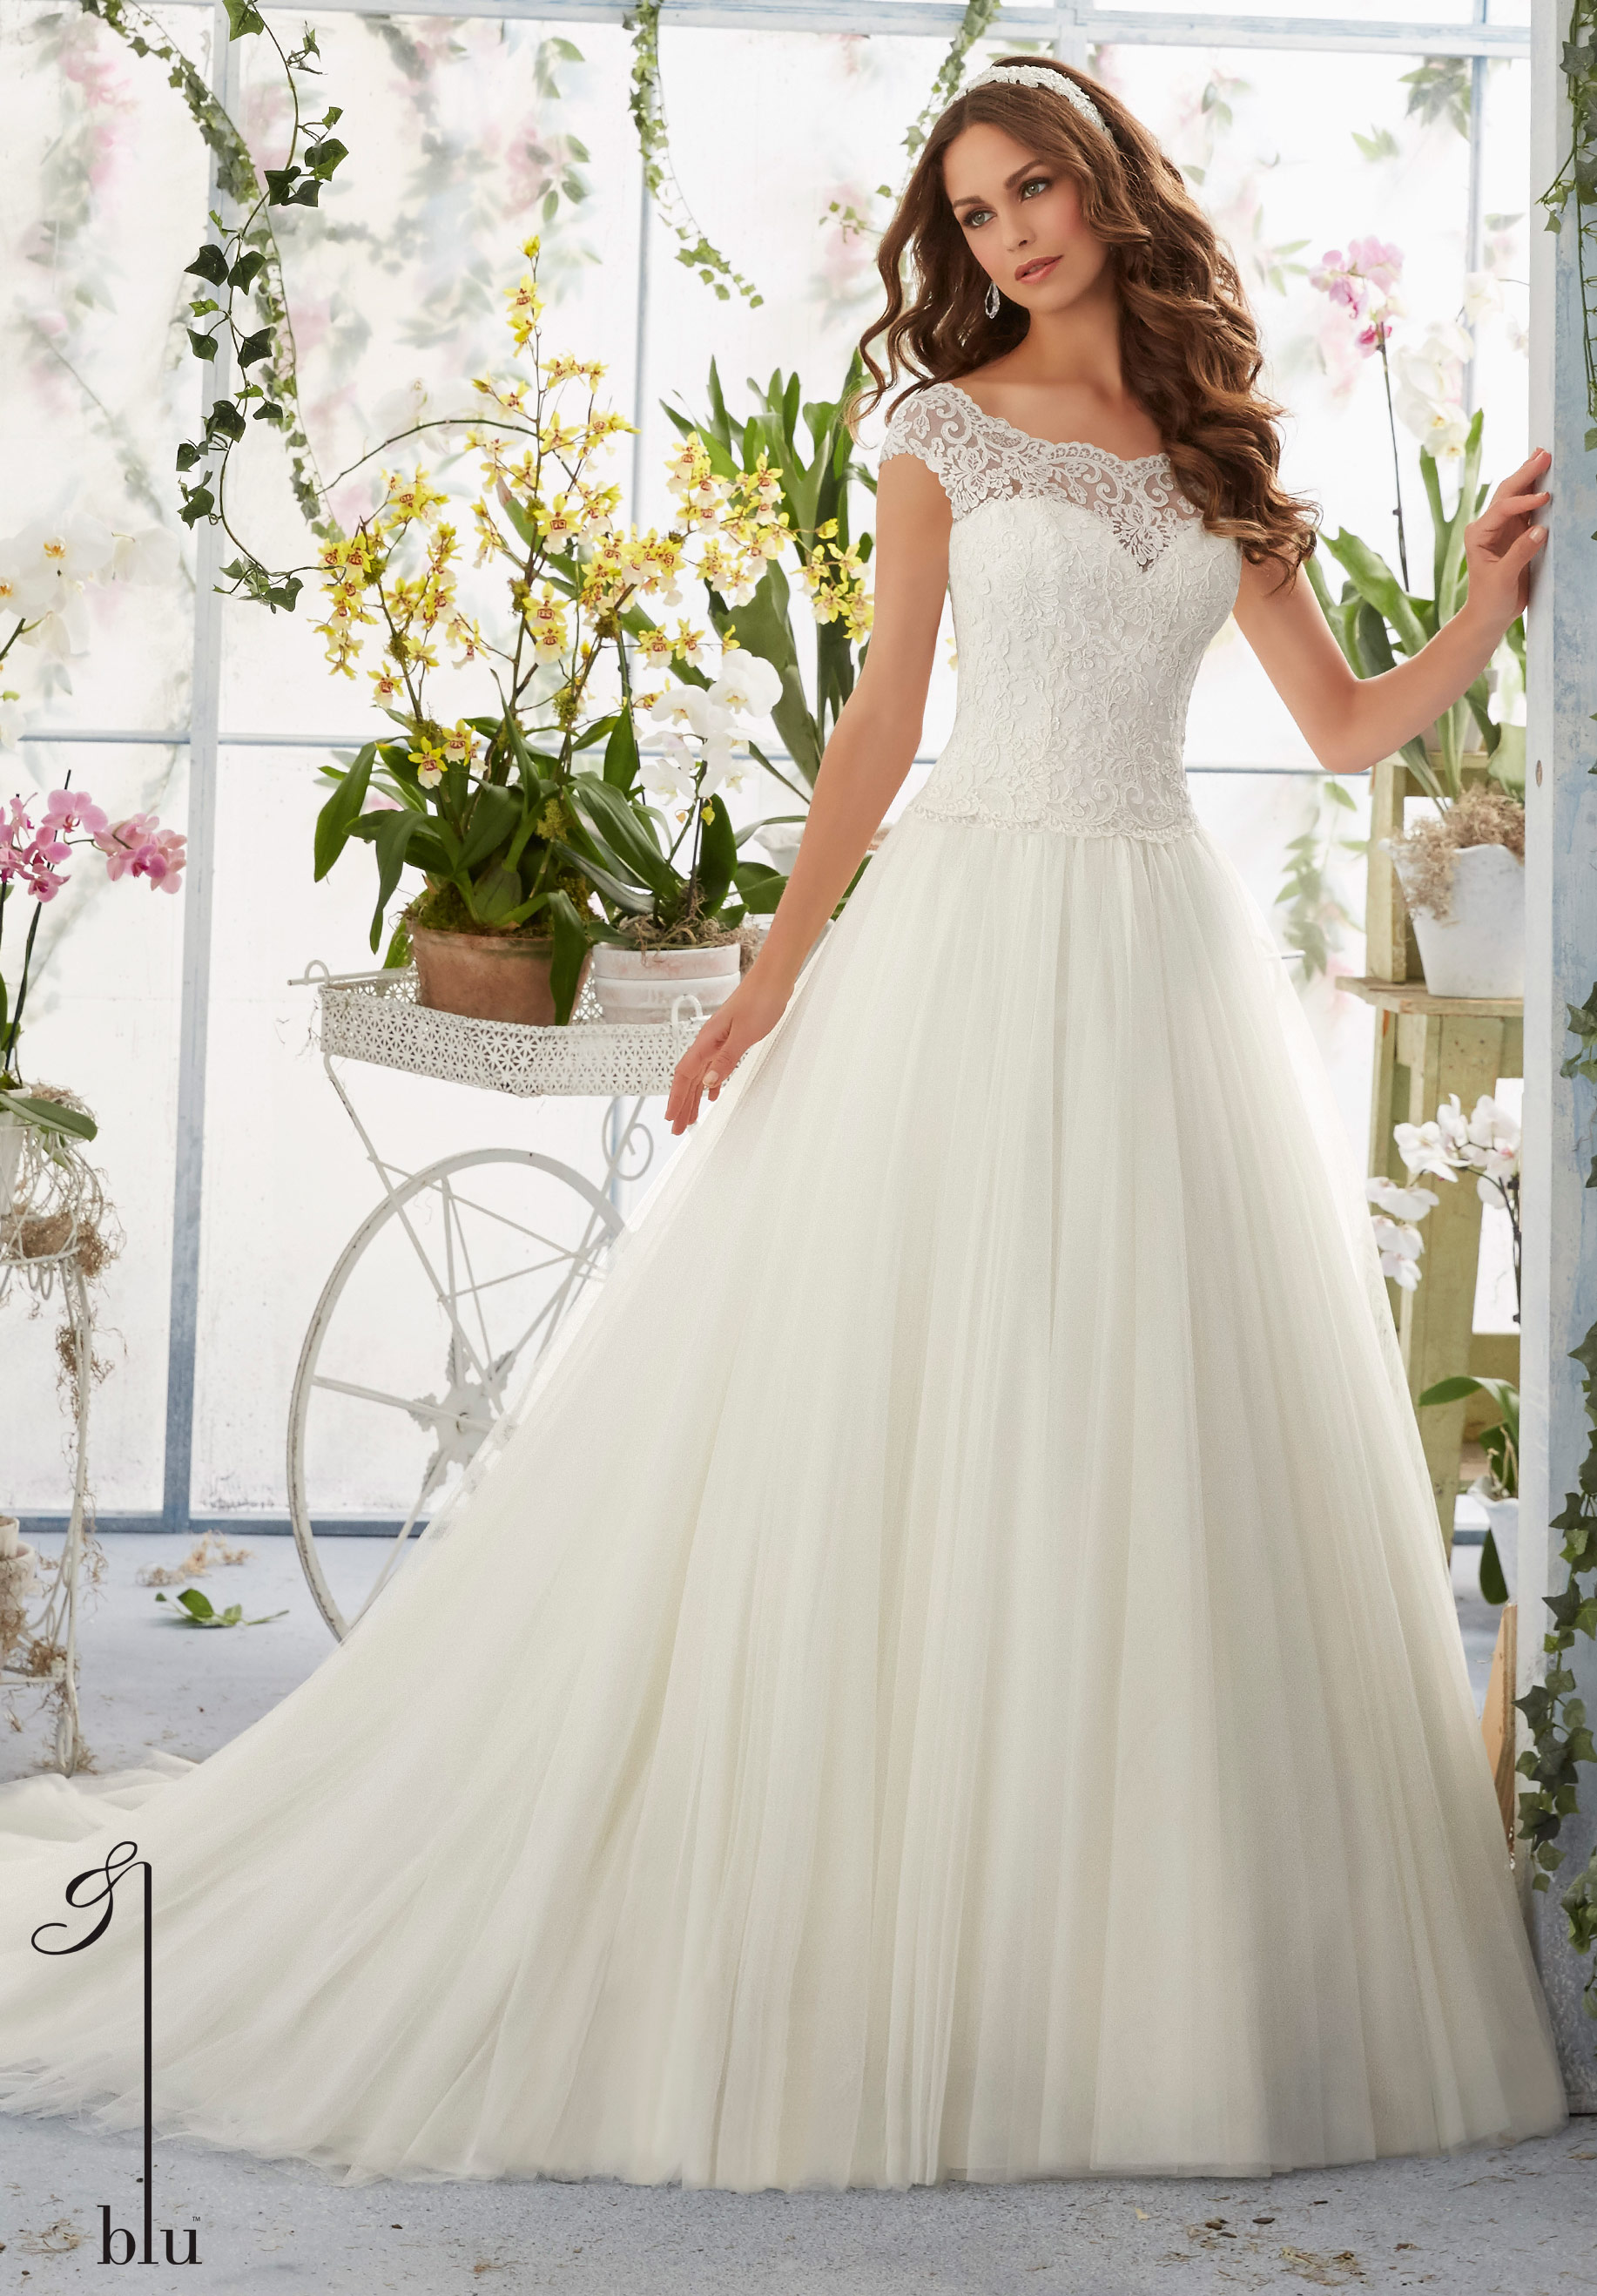 All you need to know about mori lee bridal gowns costs for Mori lee wedding dress prices